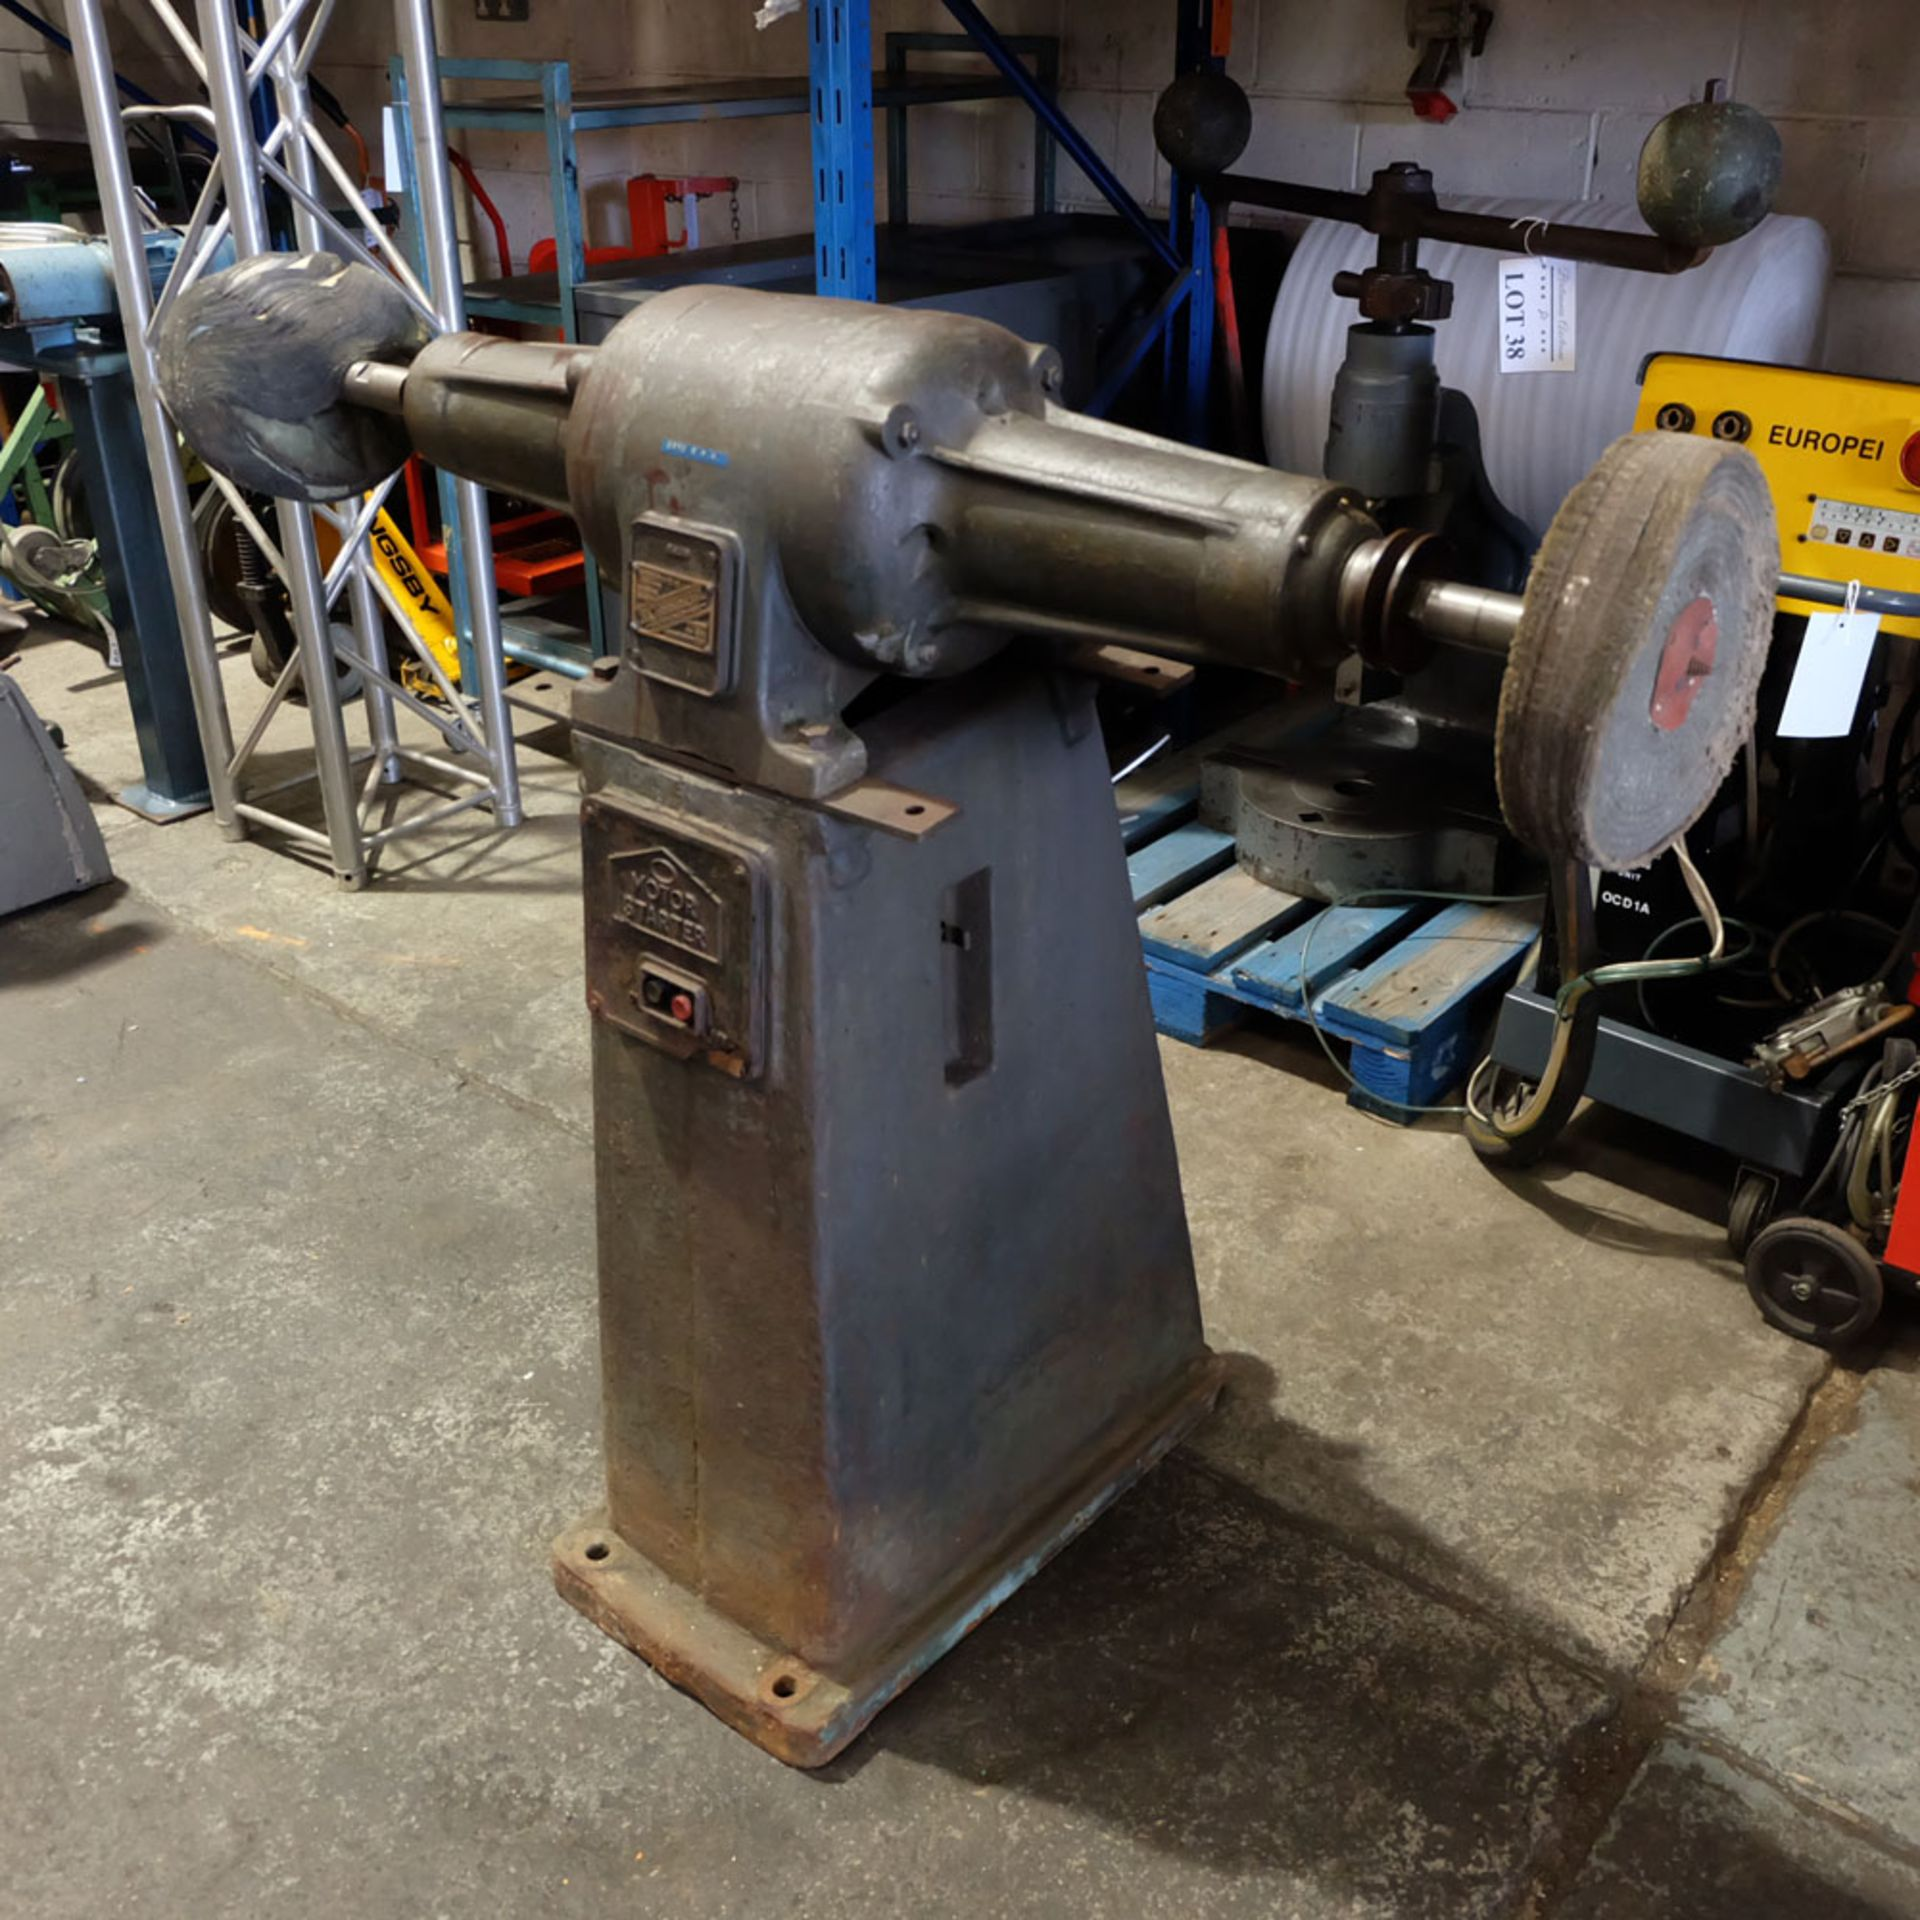 Canning Type 16/12 Double Ended Pedestal Polishing Machine. 2870rpm. - Image 3 of 6